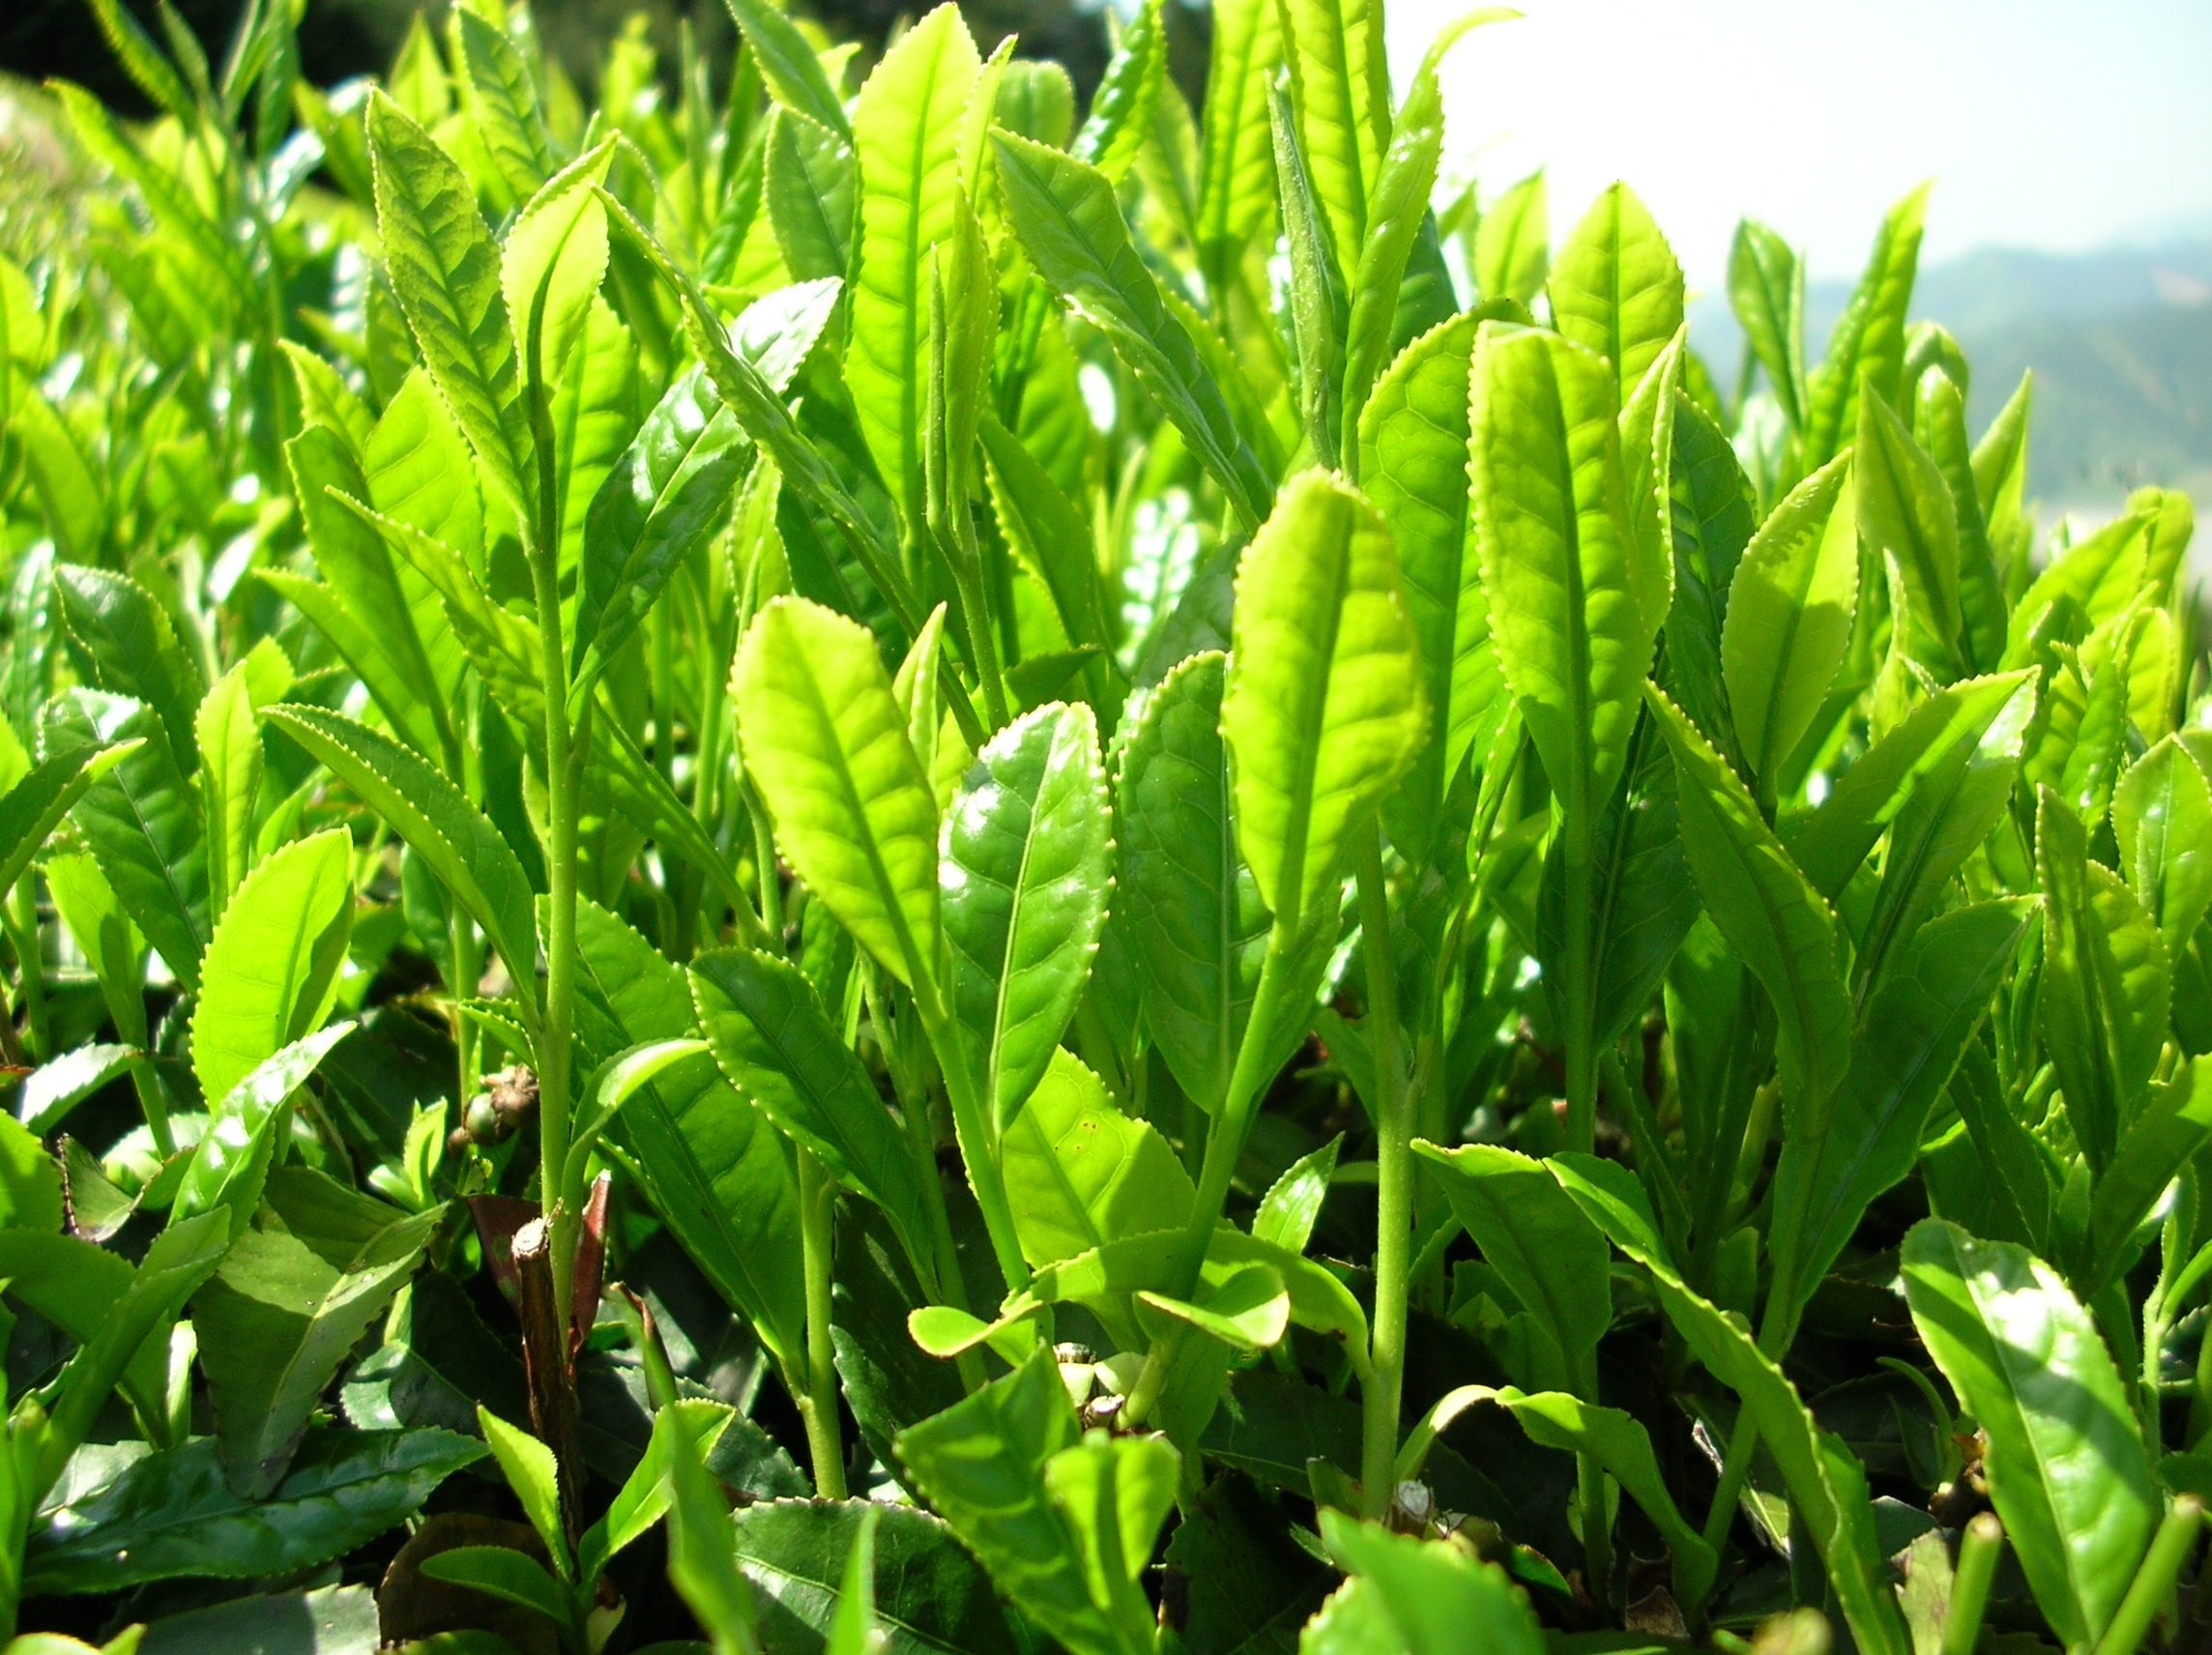 File:Green tea leaves.jpg - Wikimedia Commons